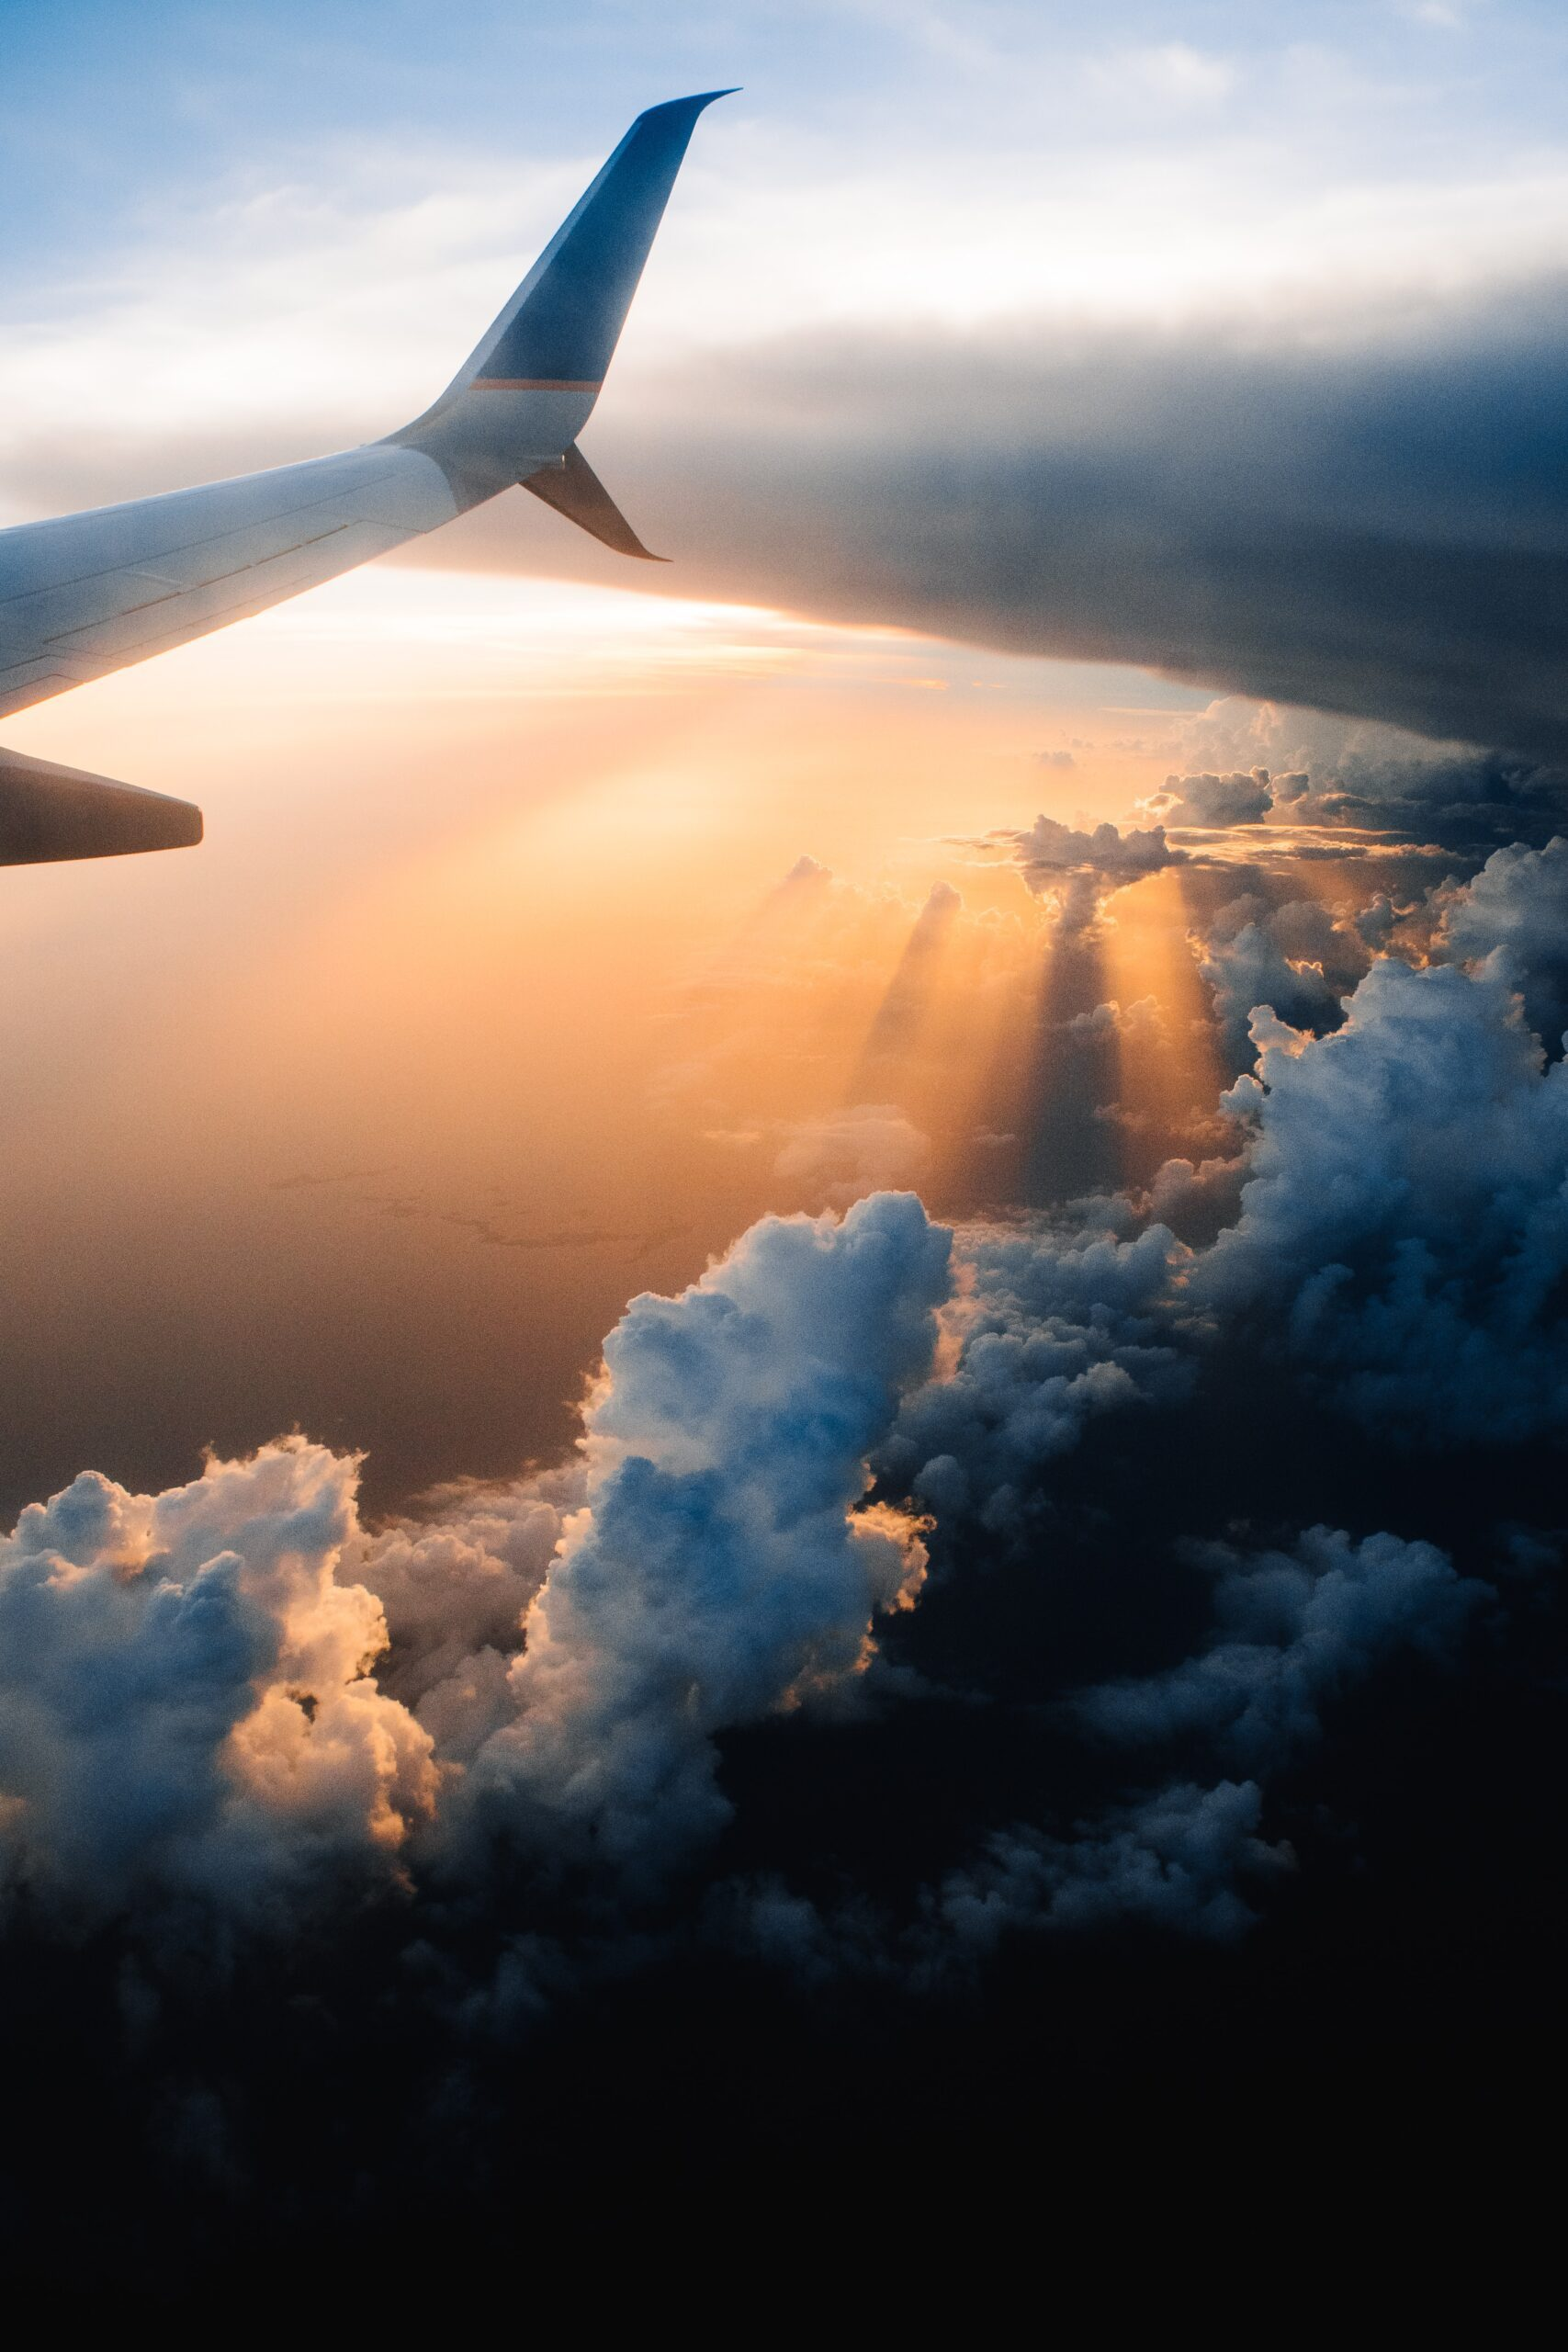 tom-barrett-tail of jet, clouds and water below-unsplash